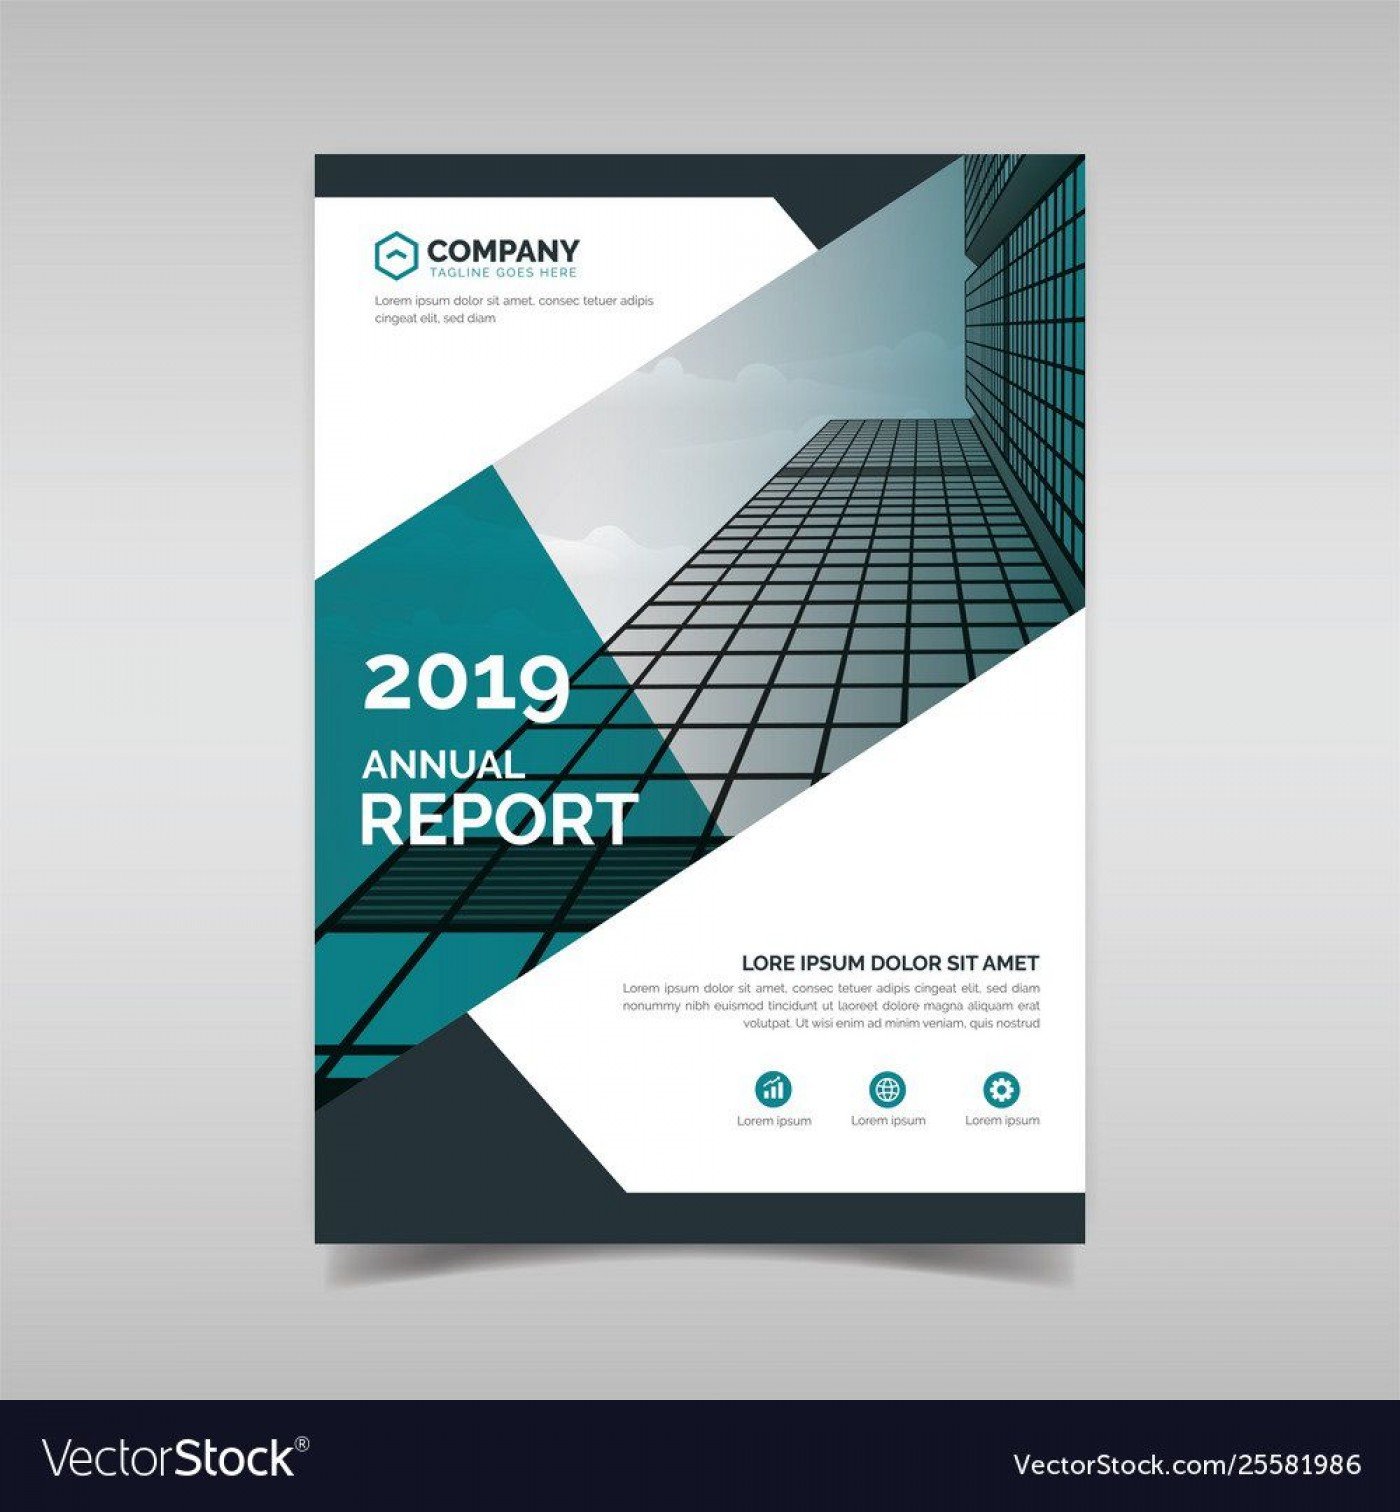 004 Imposing Free Download Annual Report Cover Design Template High Resolution  In Word Page1400